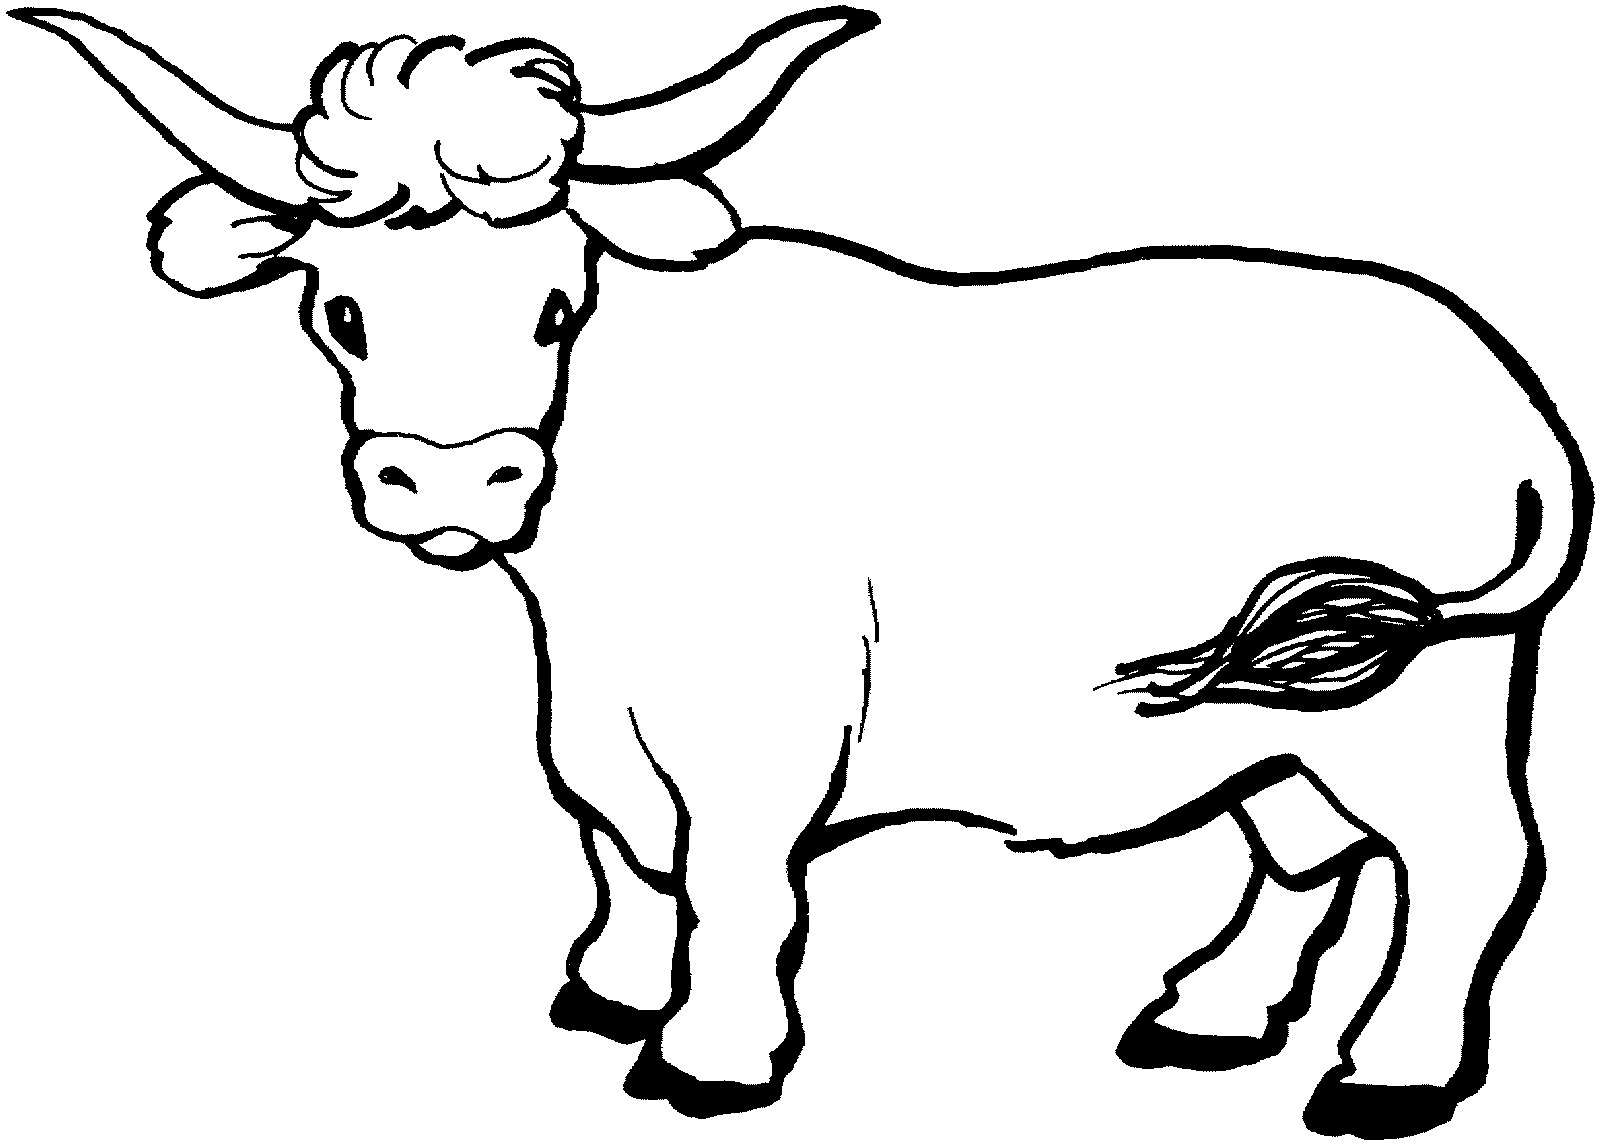 Cow coloring picture - photo#18